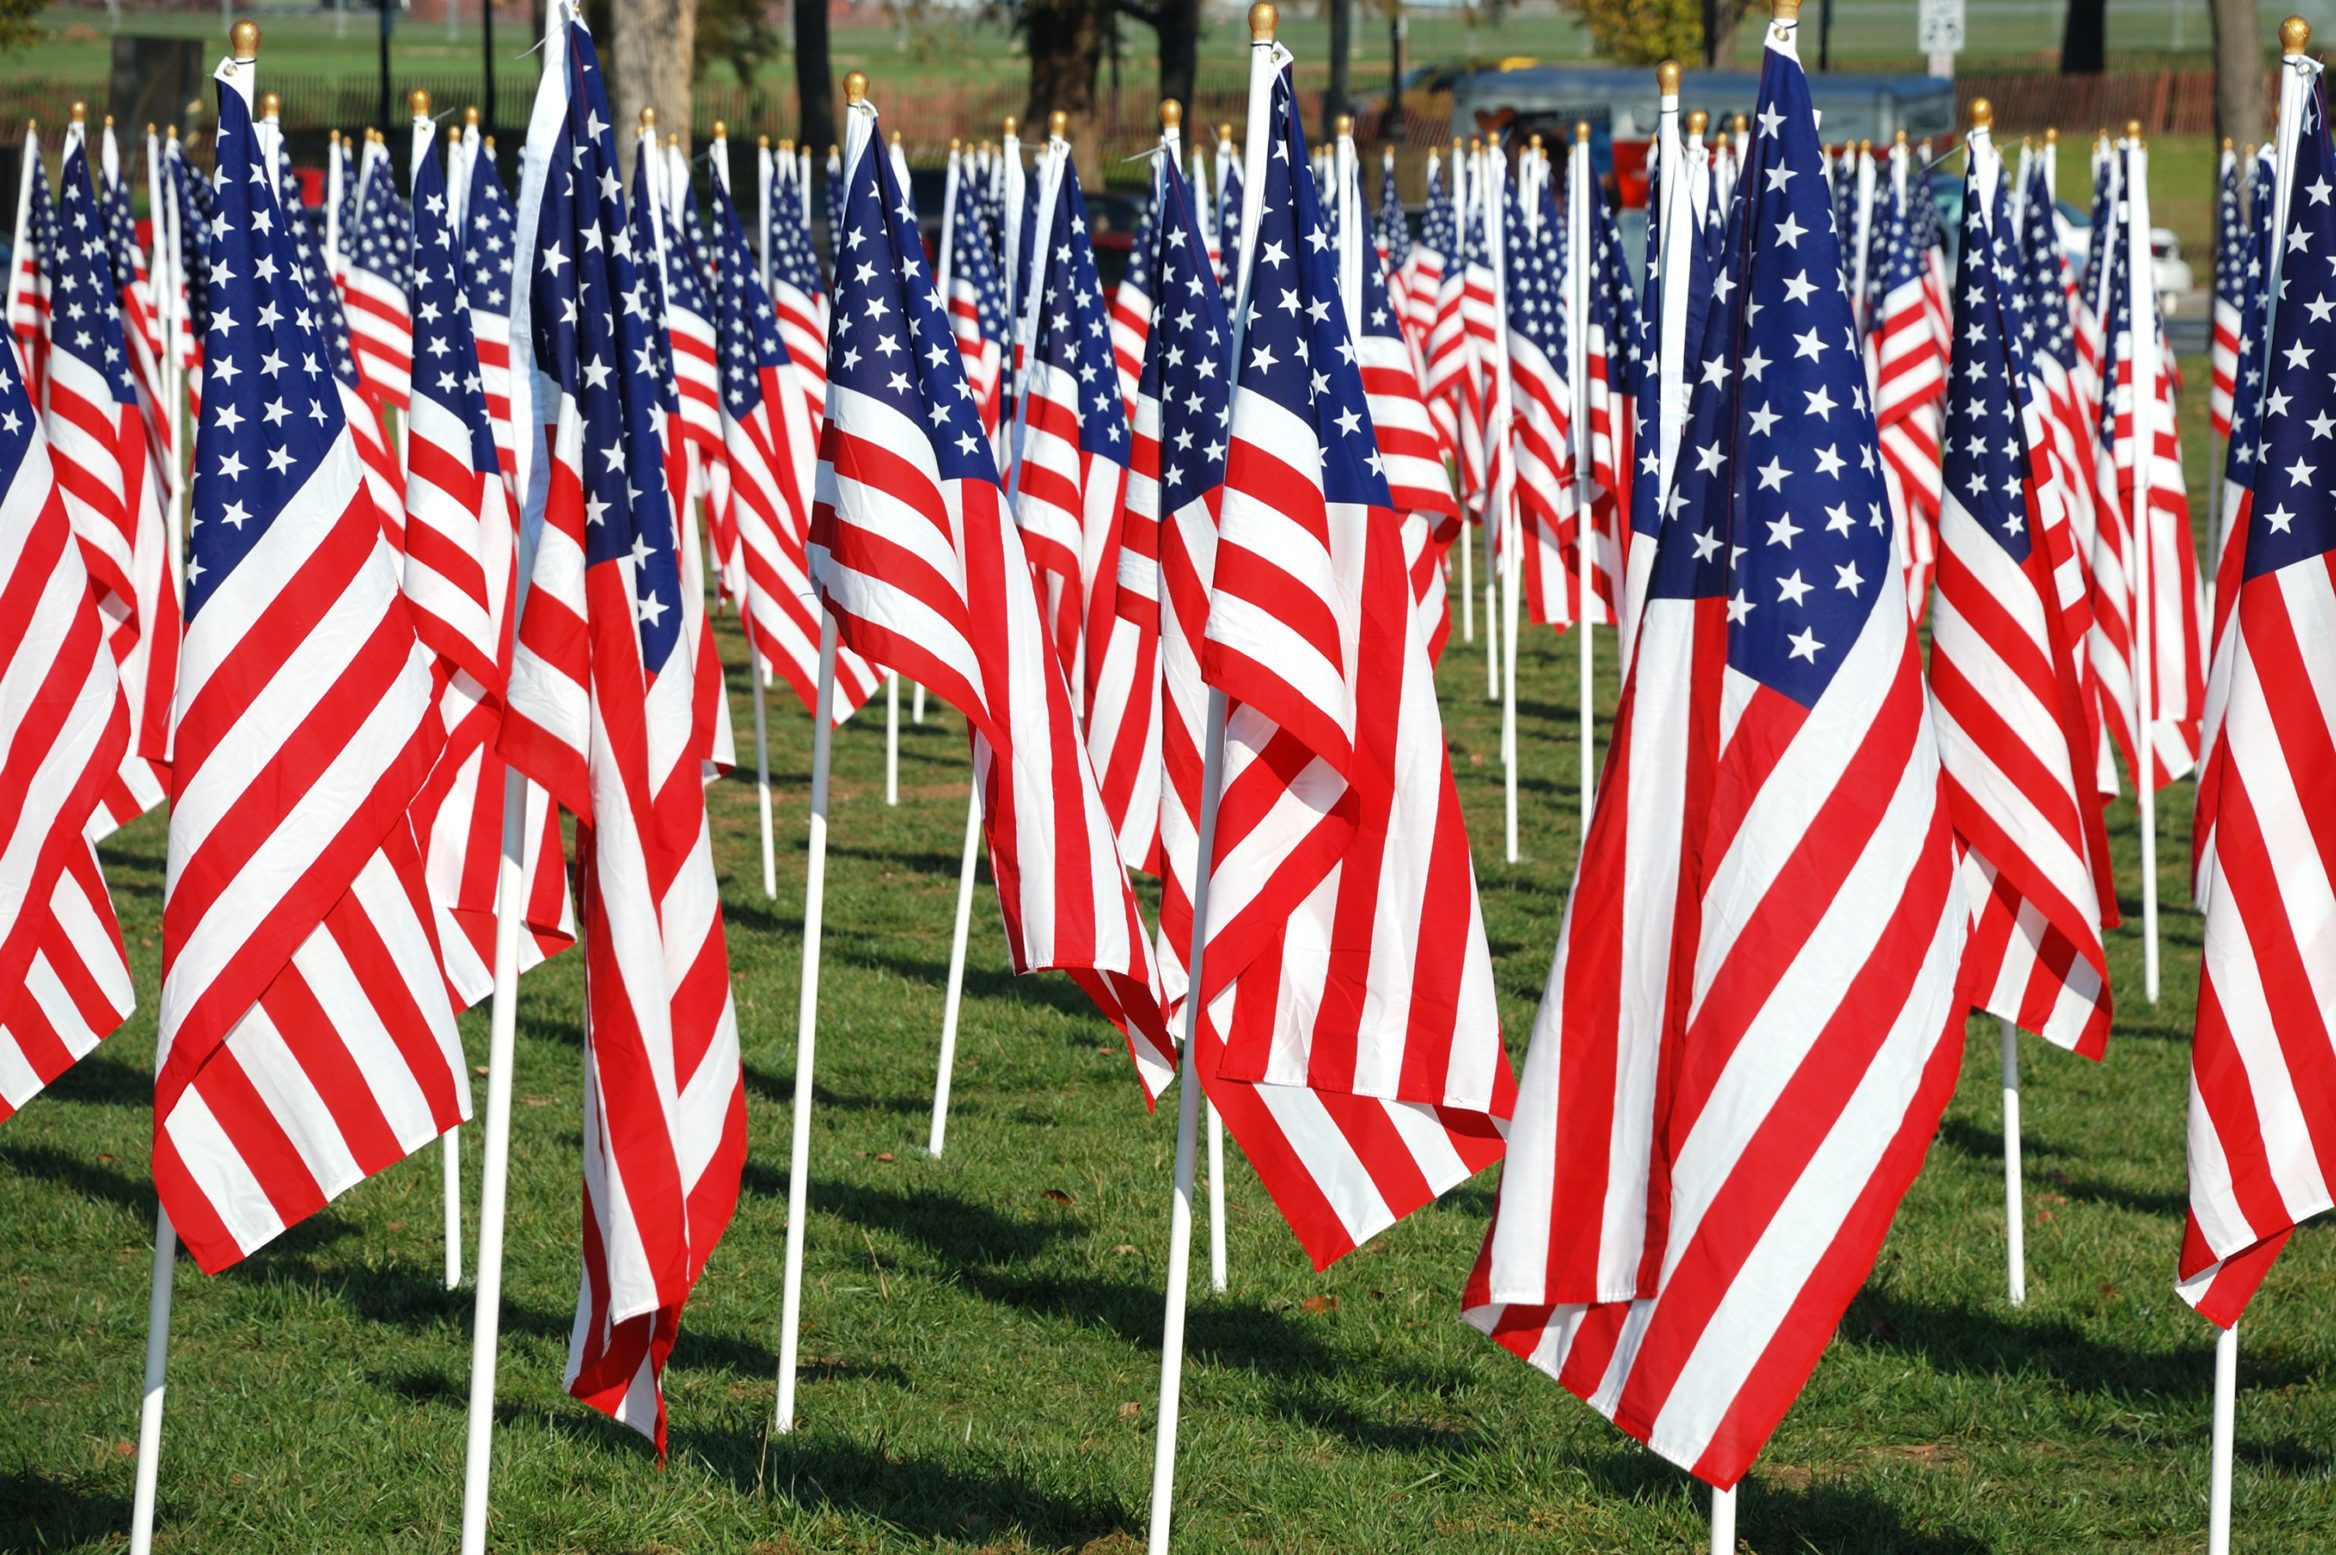 Field of American flags.